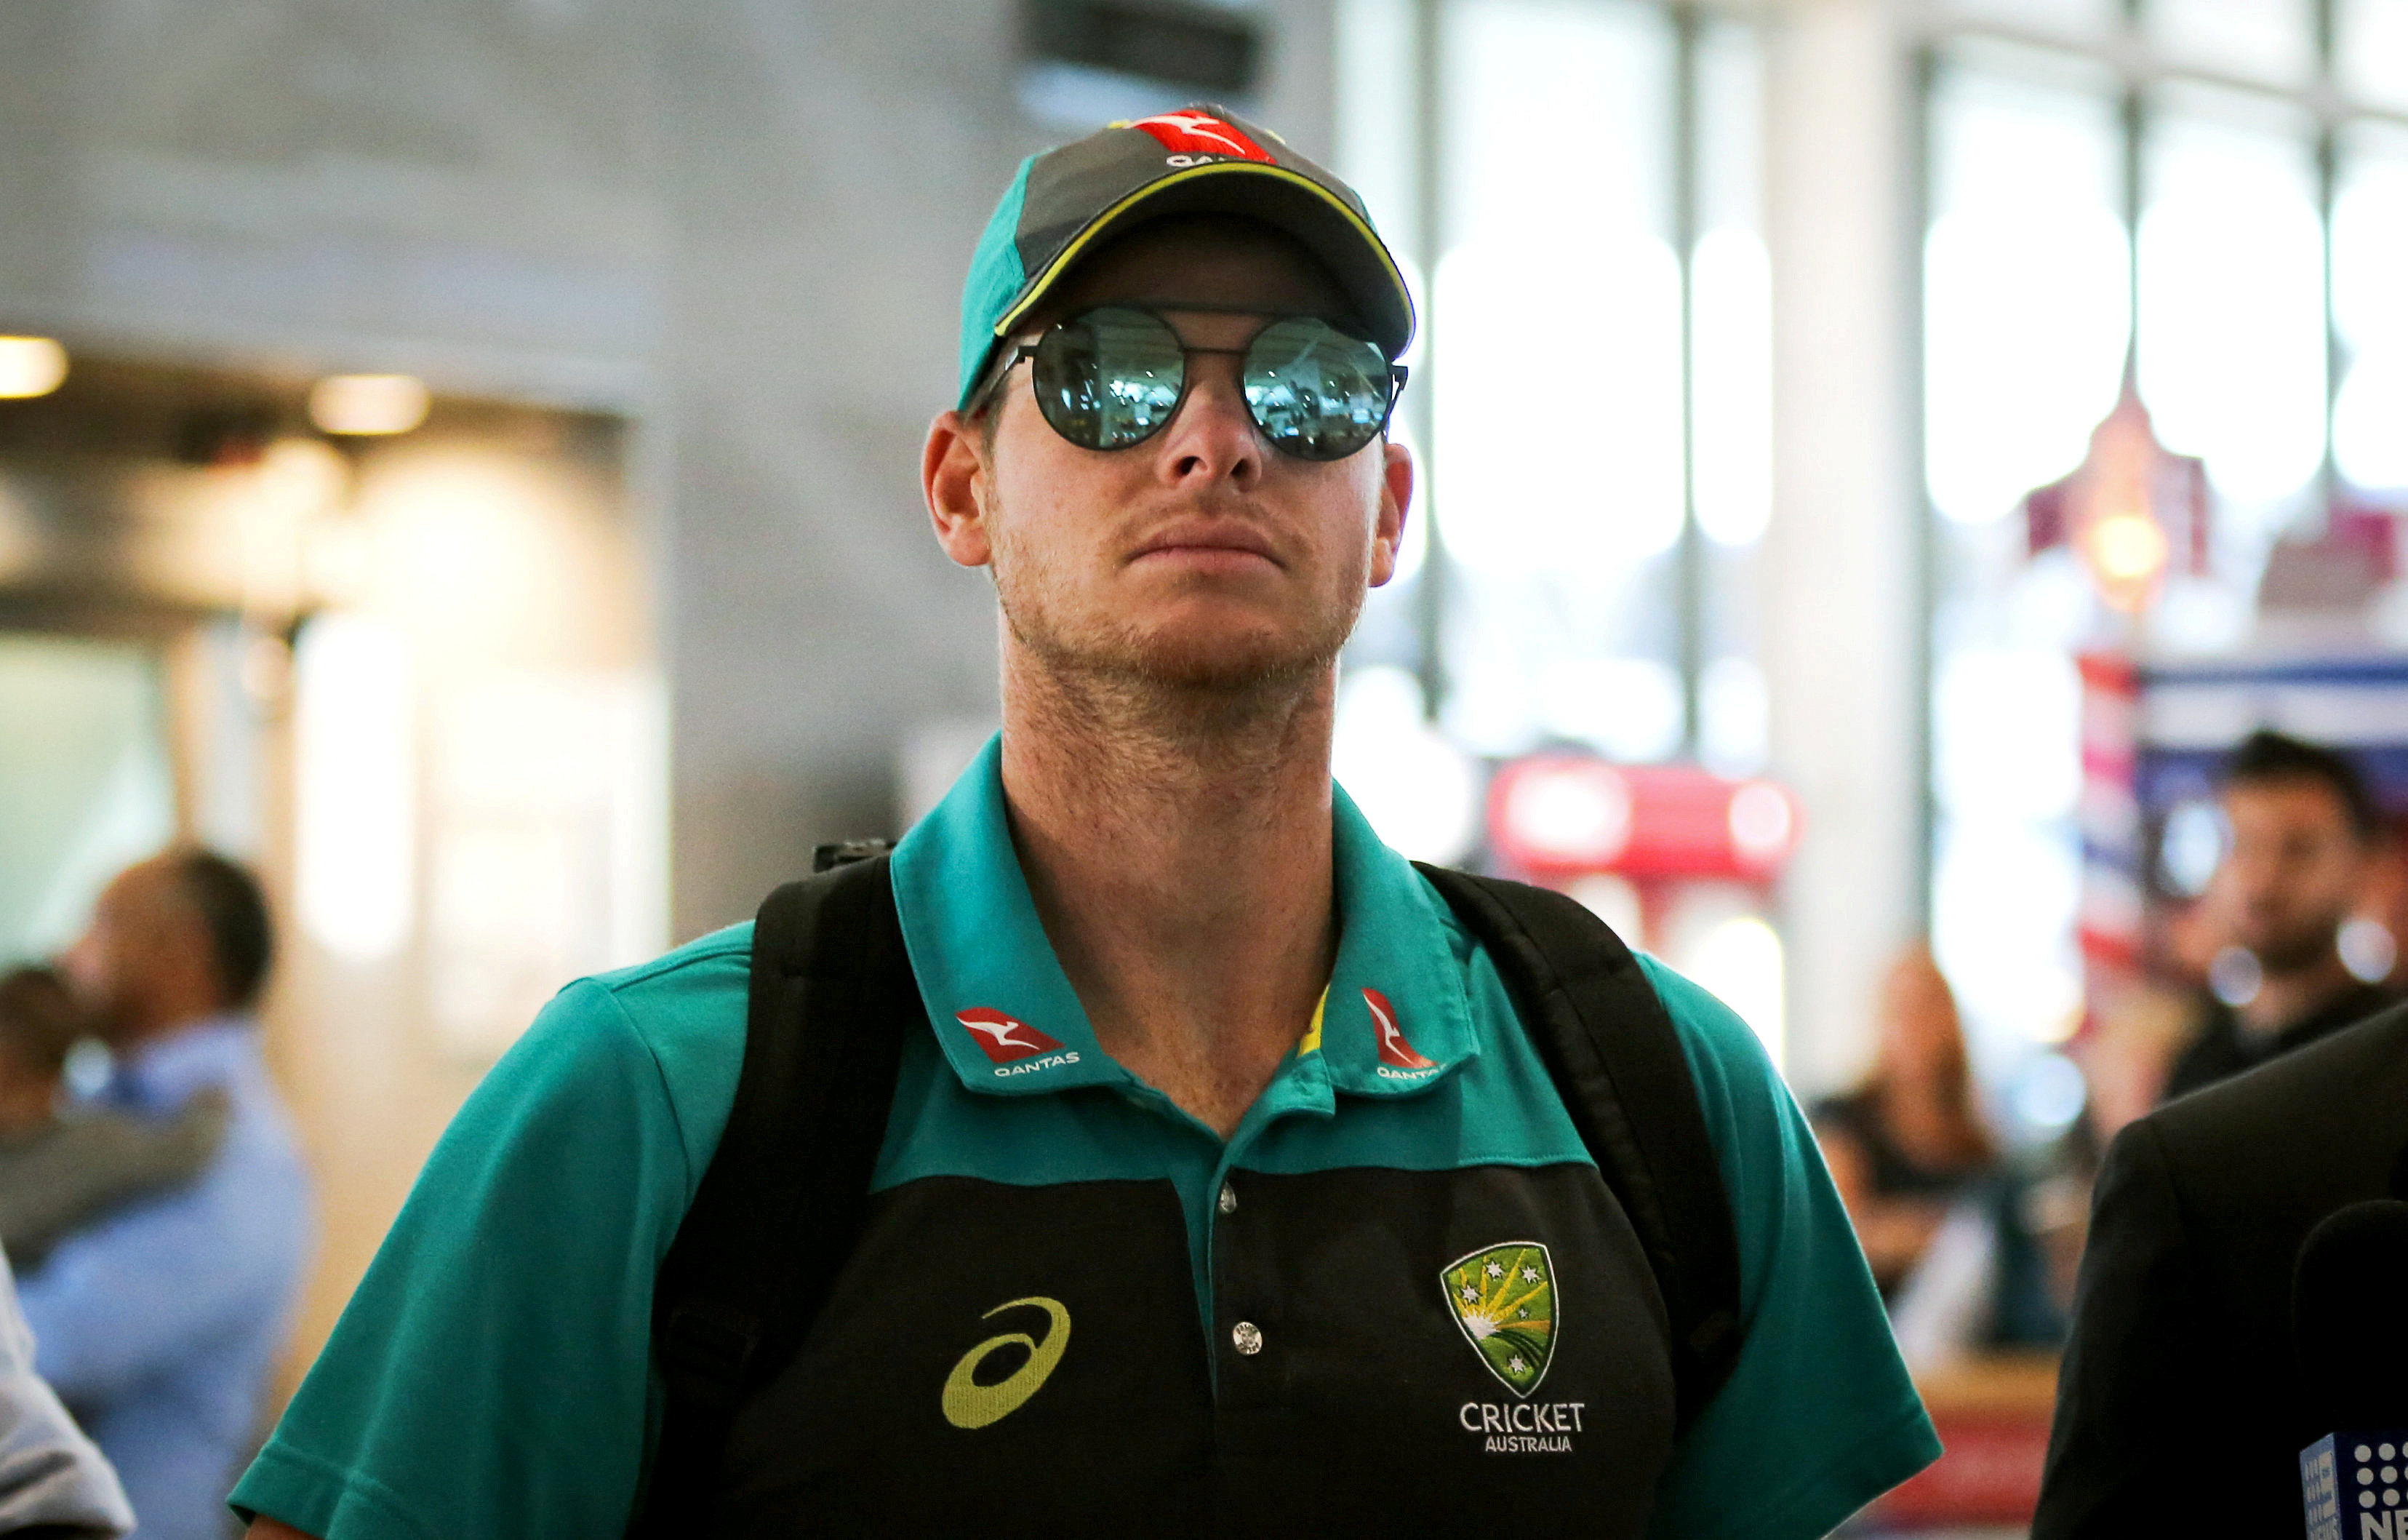 FILE PHOTO: Former Australia cricket test captain Steve Smith arrives at Cape Town International Airport, South Africa March 27,2018. REUTERS/Sumaya Hisham/File Photo